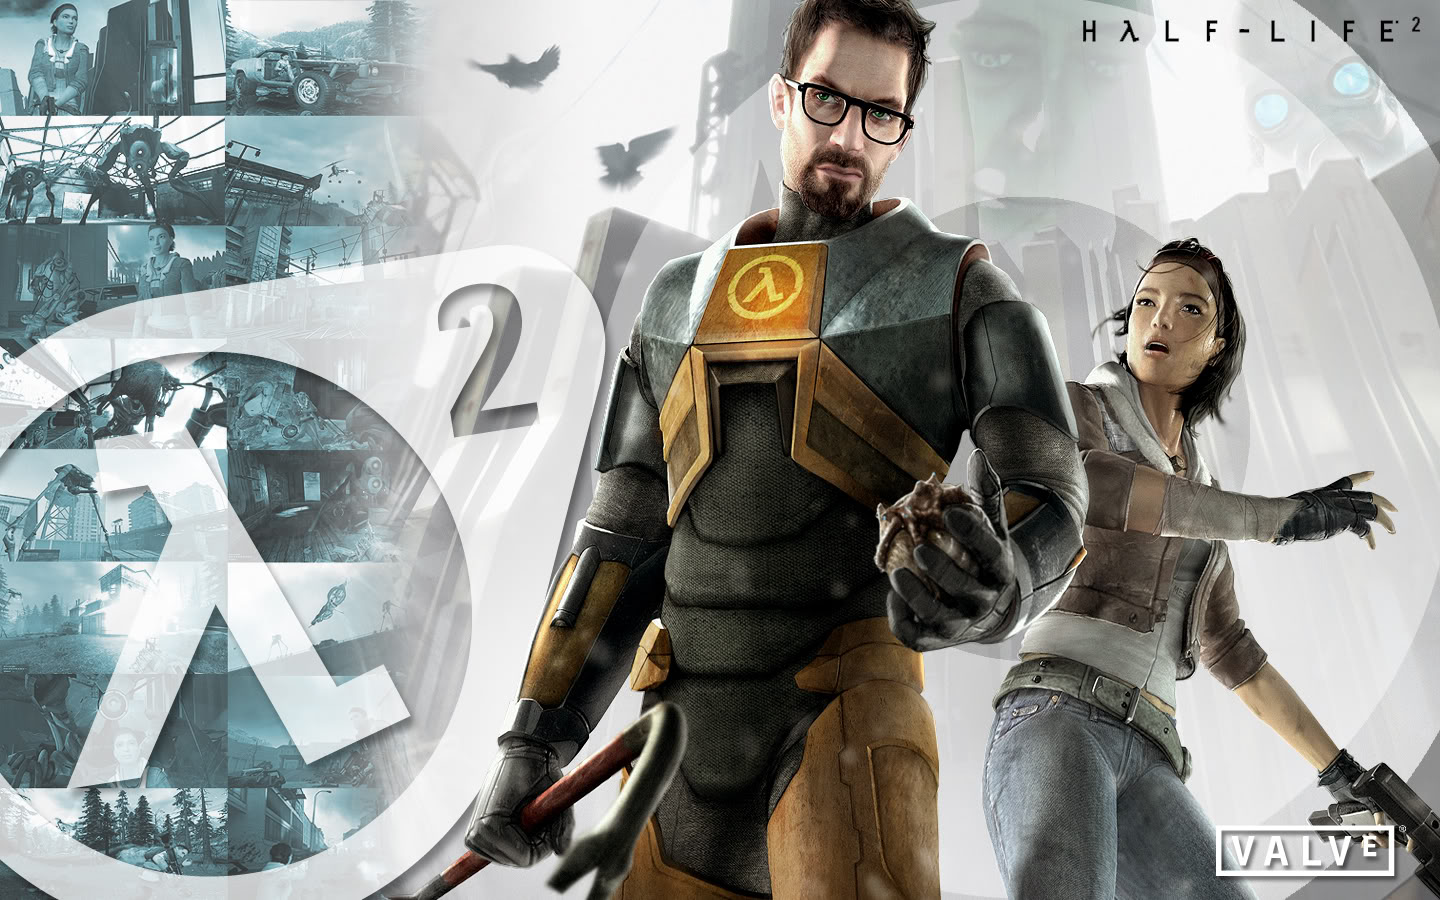 HalfLife2 wallpaper